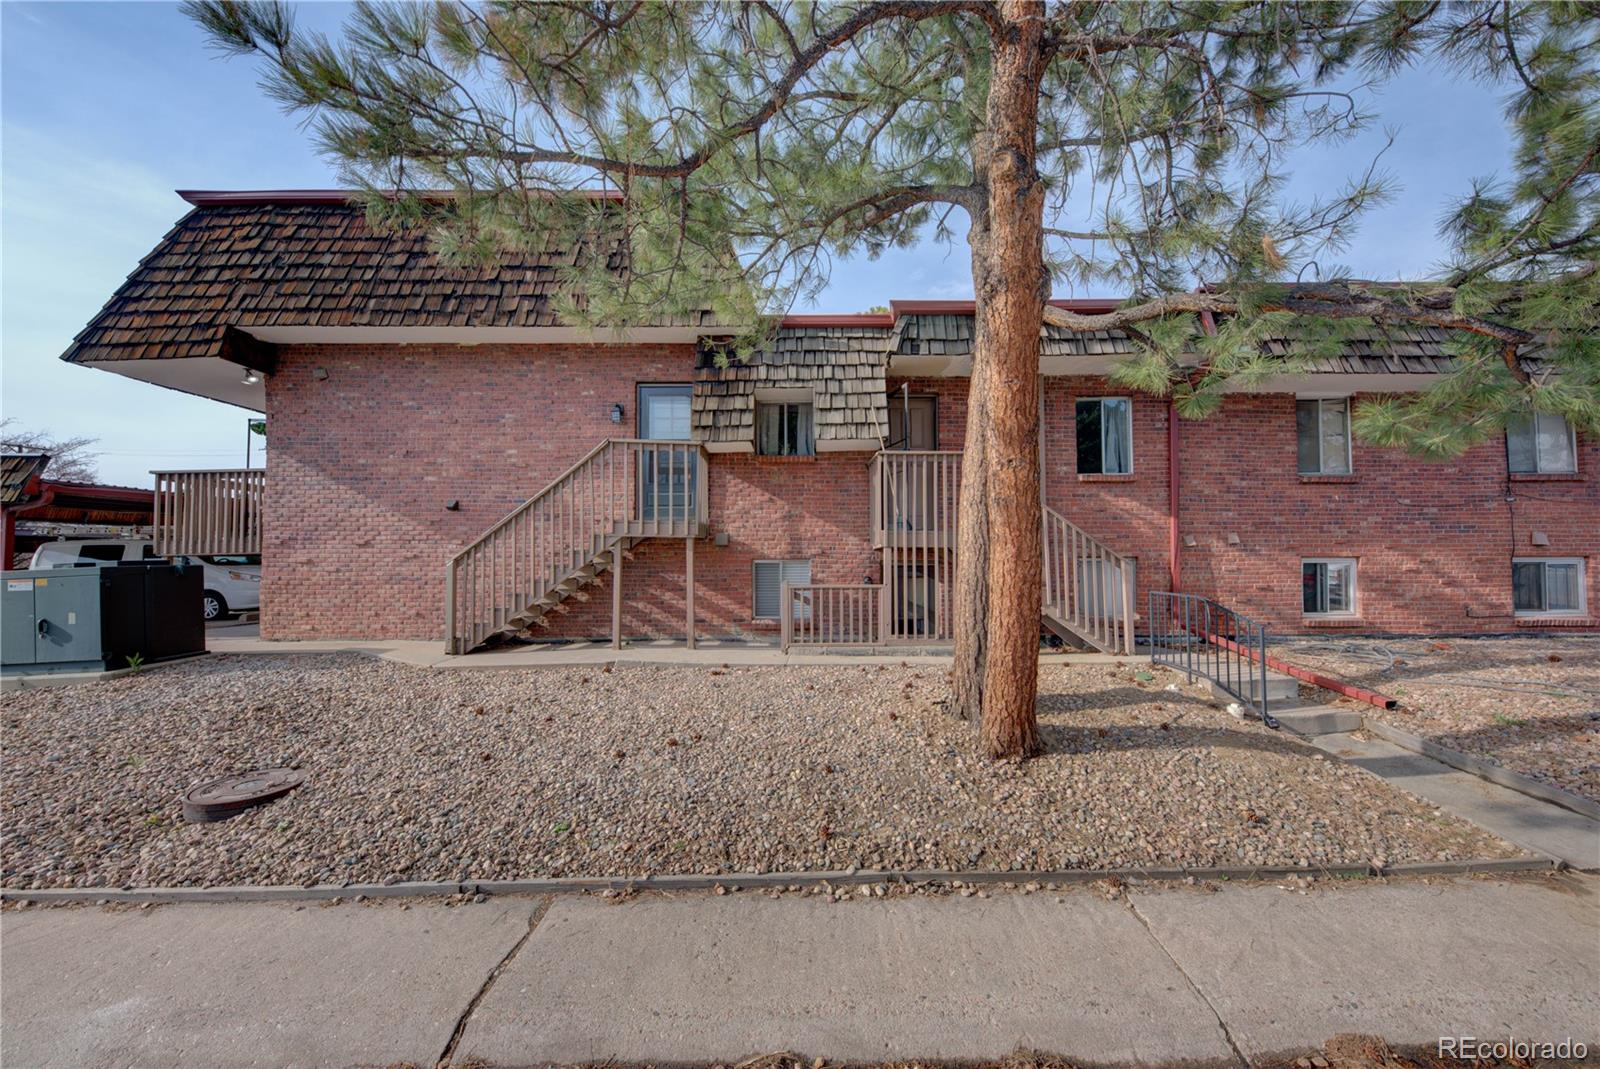 Welcome to this completely renovated and remodeled condo between the Goldsmith and Virginia Village areas of Denver.  The home has new cabinets, new Stone Coat counters, new appliances, and a new AC unit.  The Heat is included with the HOA, along with laundry on-site. Located along Evans, you are close to I-25, public transit (including light rail), and plenty of restaurant choices.